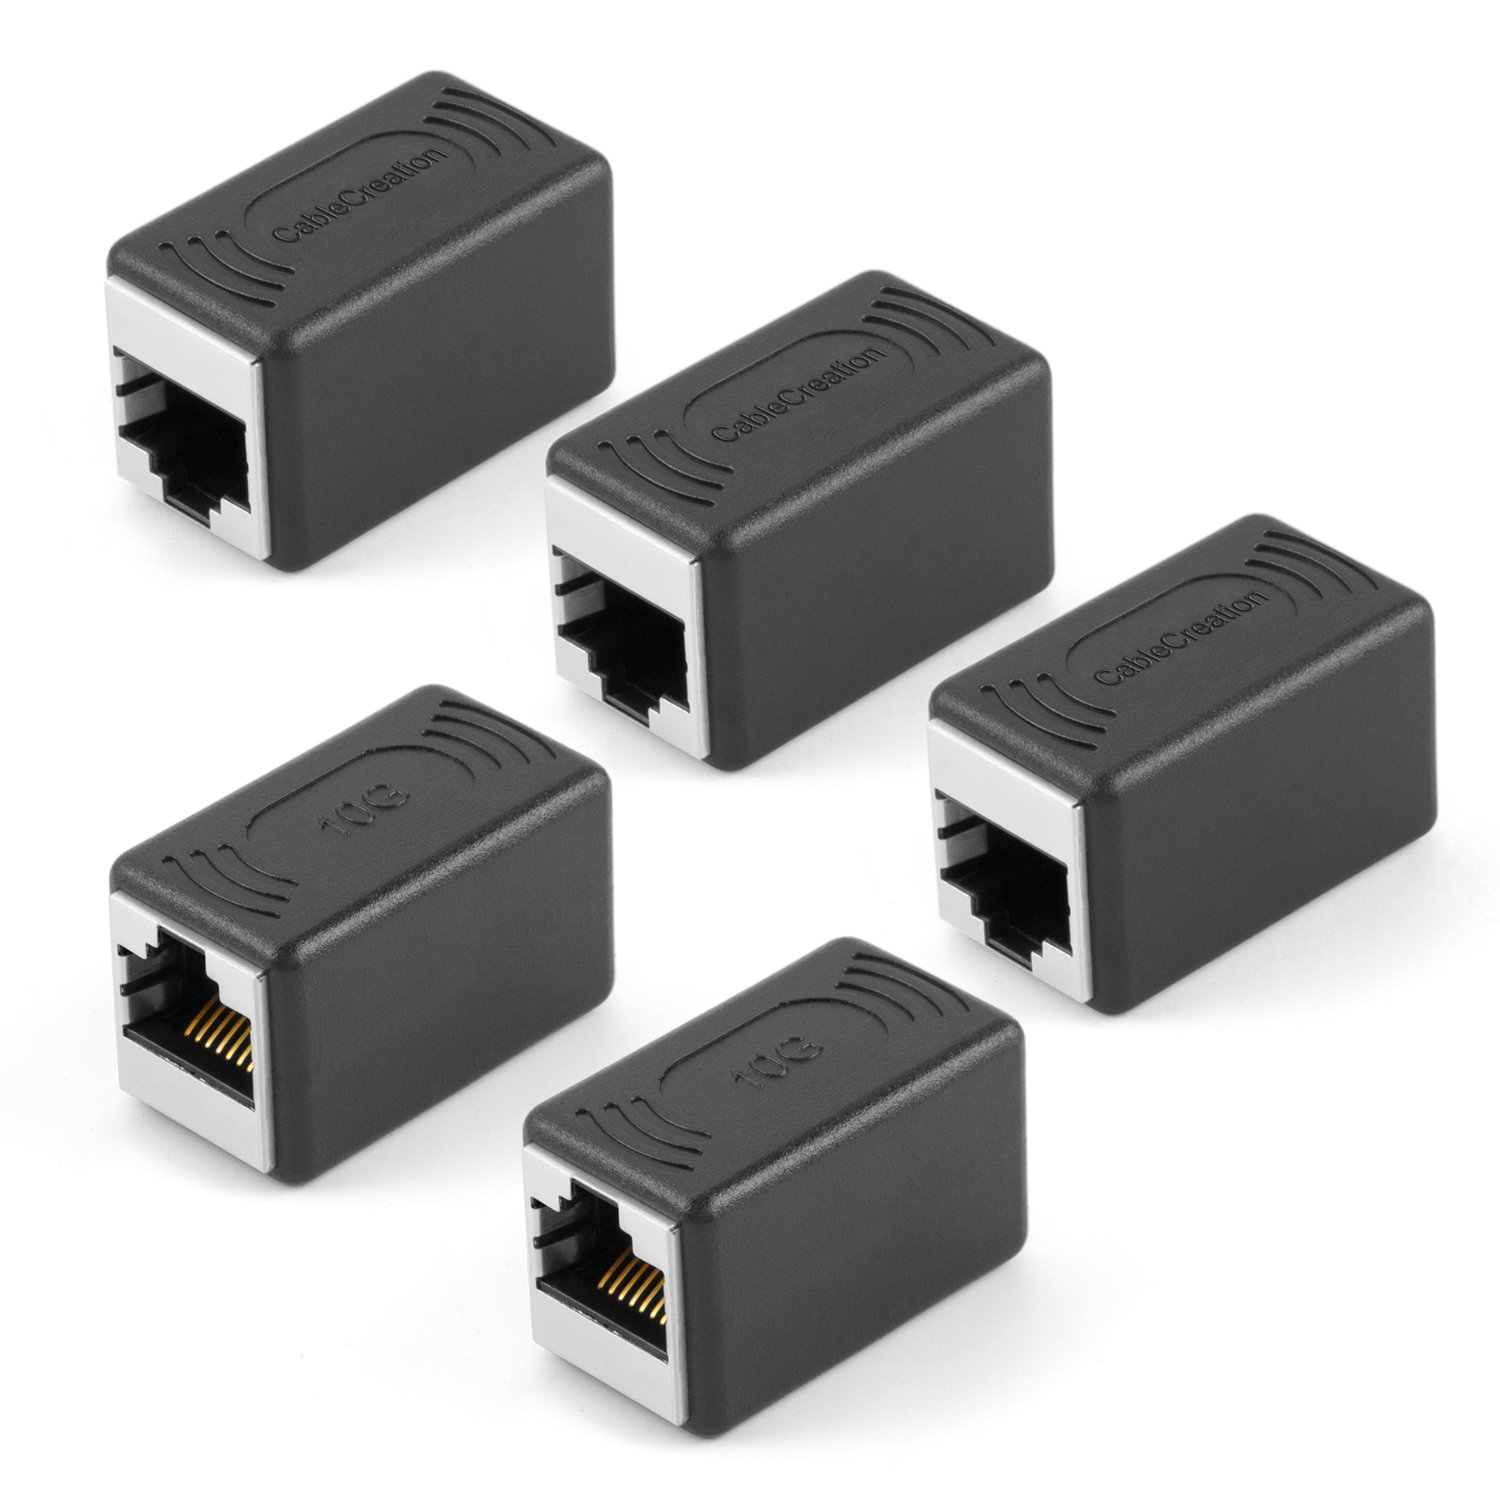 CableCreation RJ45 Coupler Cat7/Cat6/Cat6a/Cat5e/Cat5 Ethernet Cable Extender Adapter Straight Modular In-Line Coupler Female to Female RJ45 Punch-Down Keystone Jack, Black CL0254